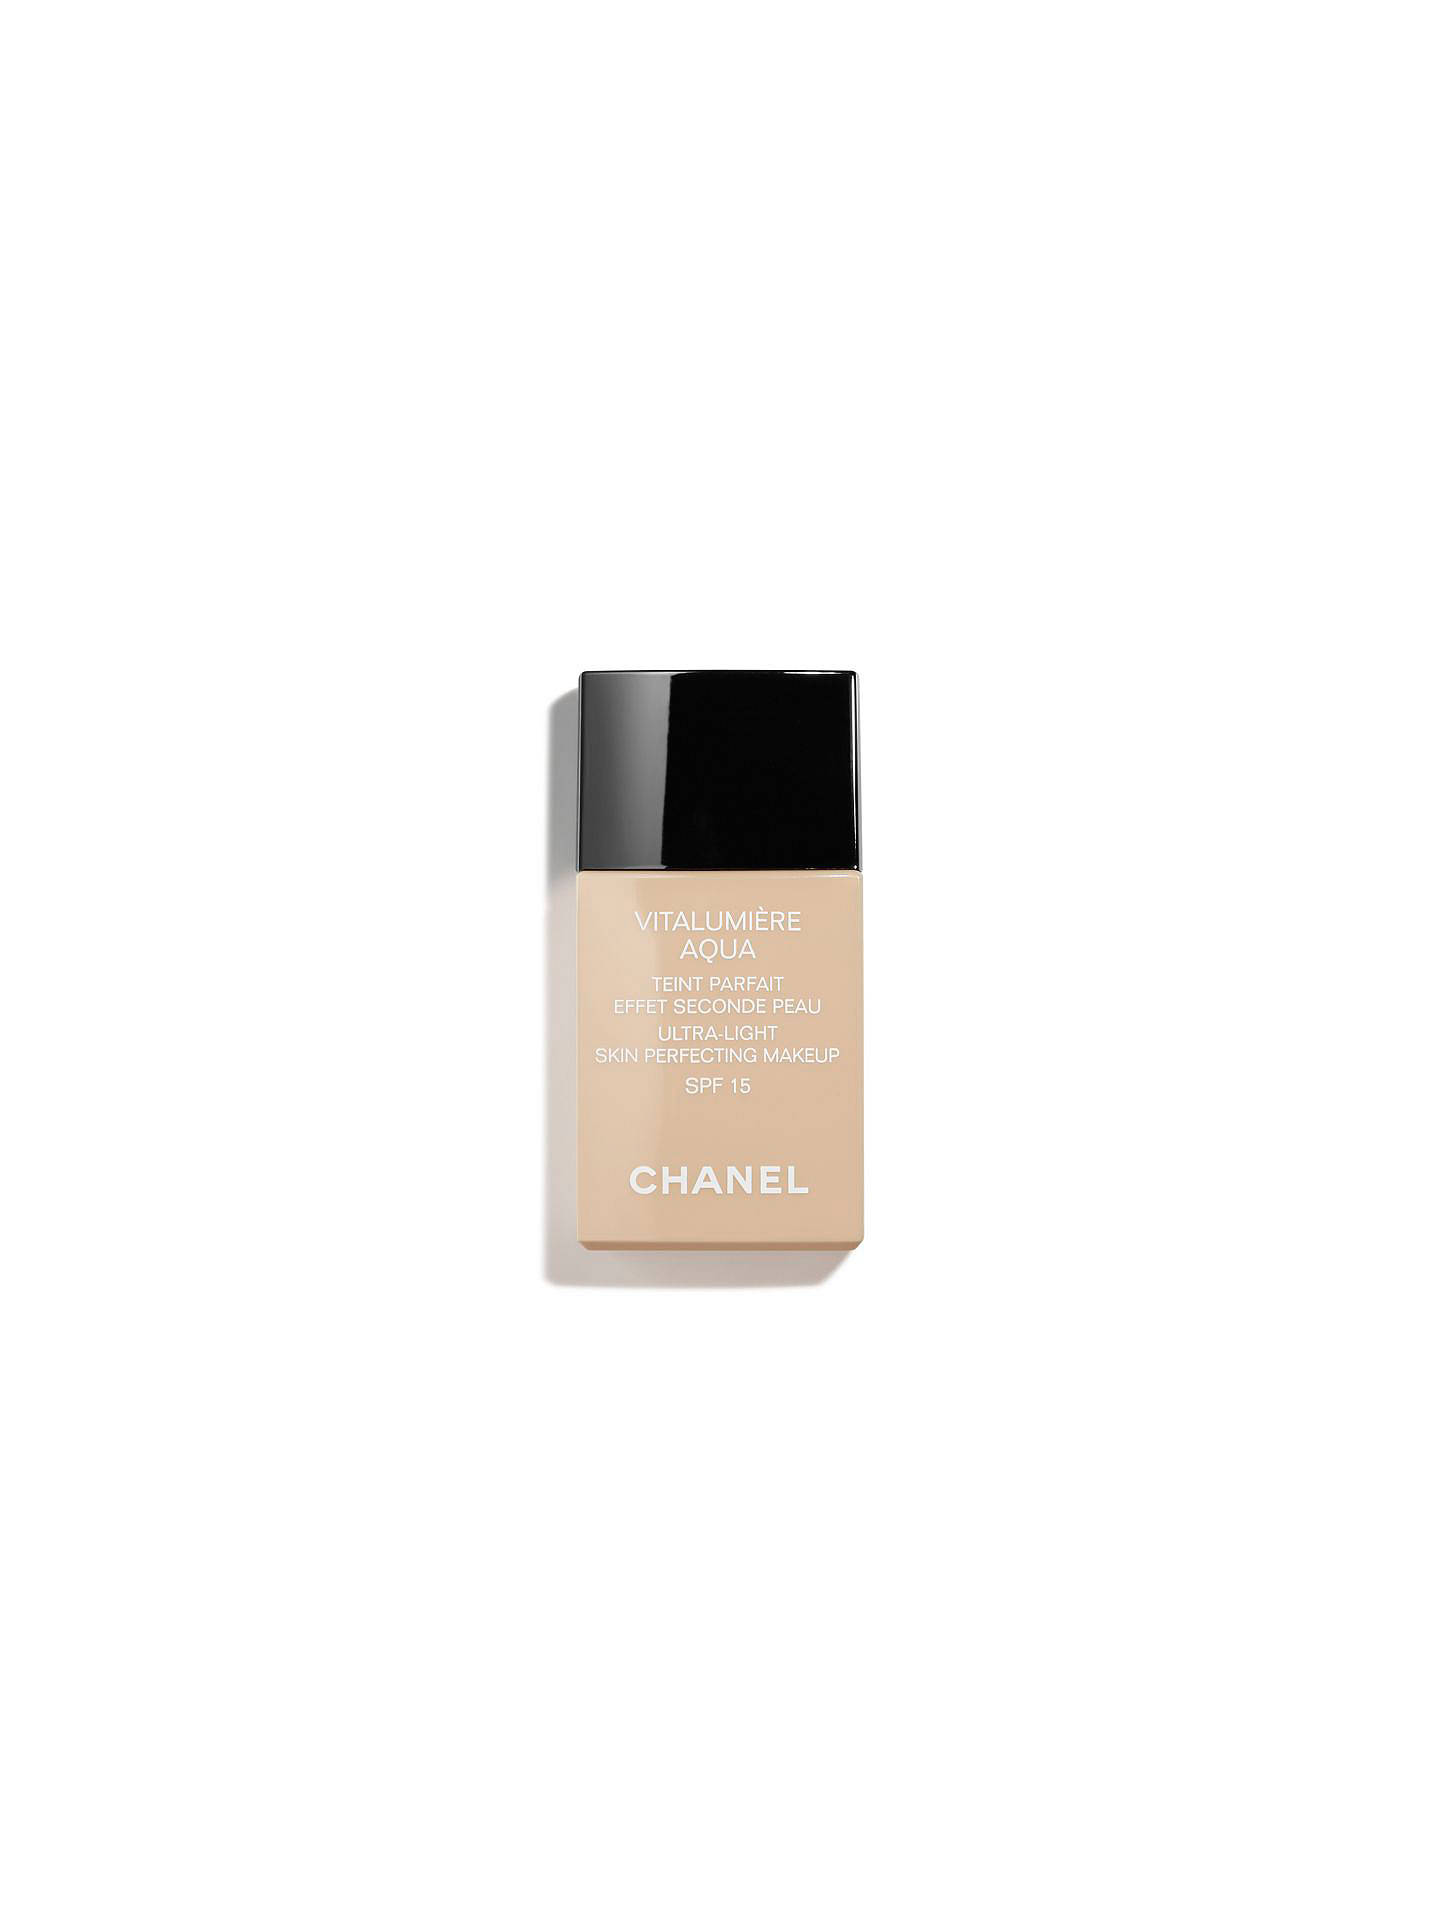 BuyCHANEL VITALUMIÈRE AQUA Ultra-Light Skin Perfecting Makeup SPF 15, 10 Beige Online at johnlewis.com